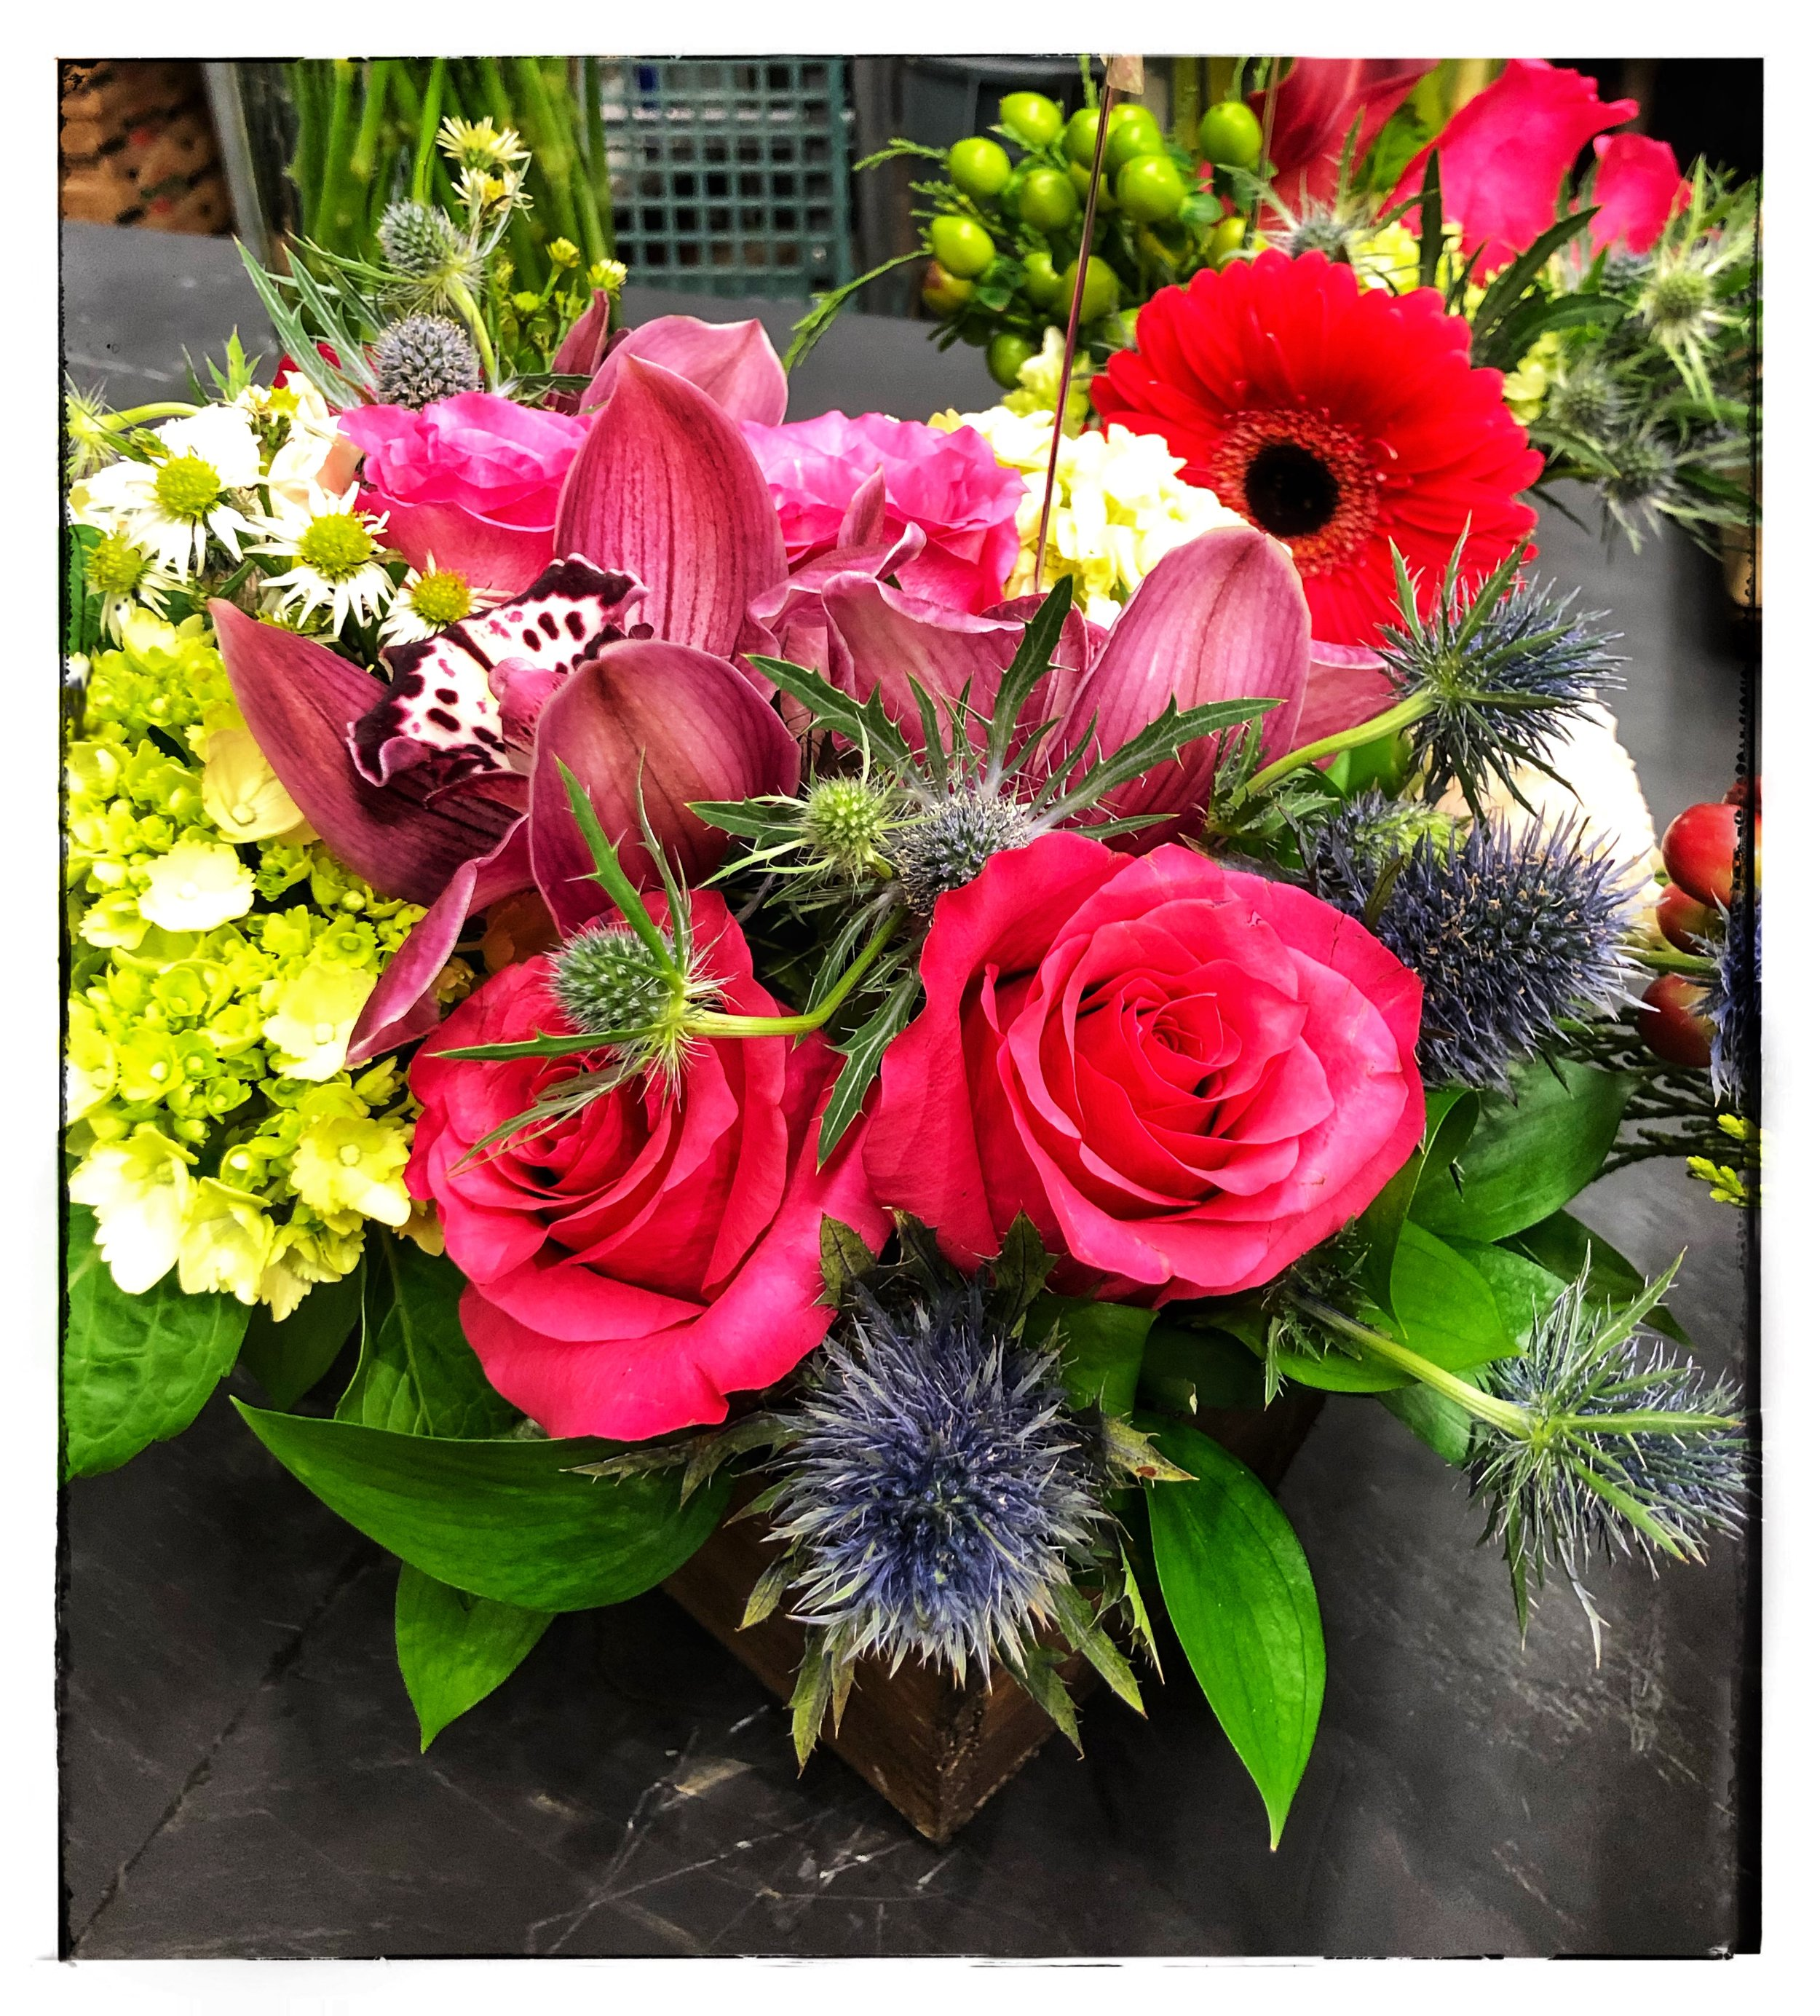 Holiday Floral Arrangements include roses, eryngium, hydrangeas and orchids.